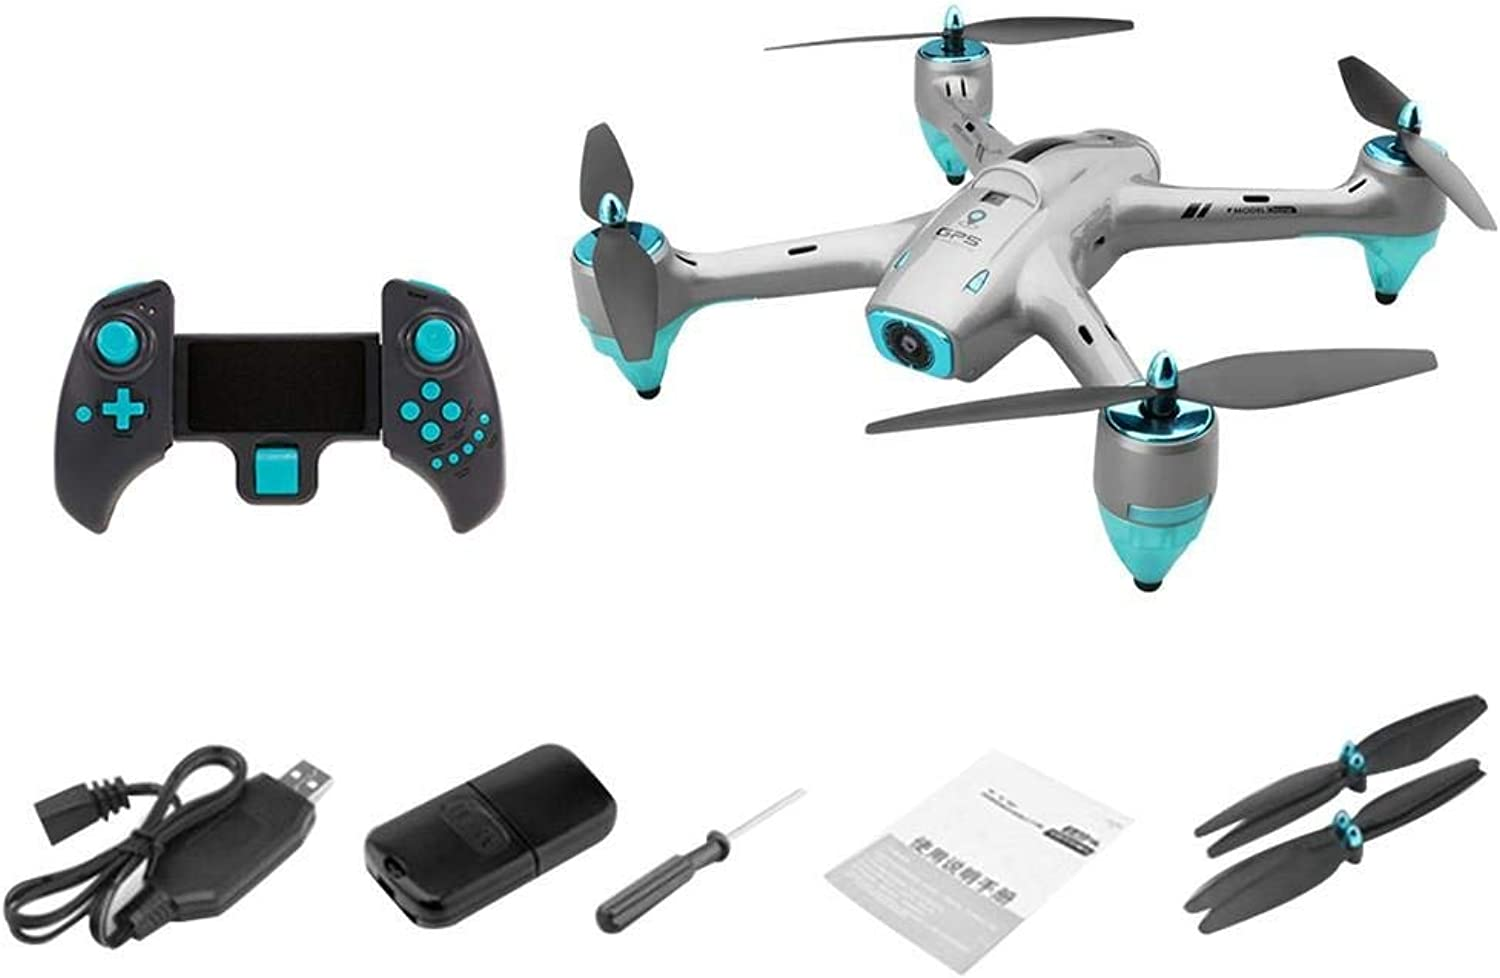 Generic 6957G HD Aerial Photography Drone GPS 5G WiFi Image Transmission 720P WideAngle Lens APP Control RC Drone 1